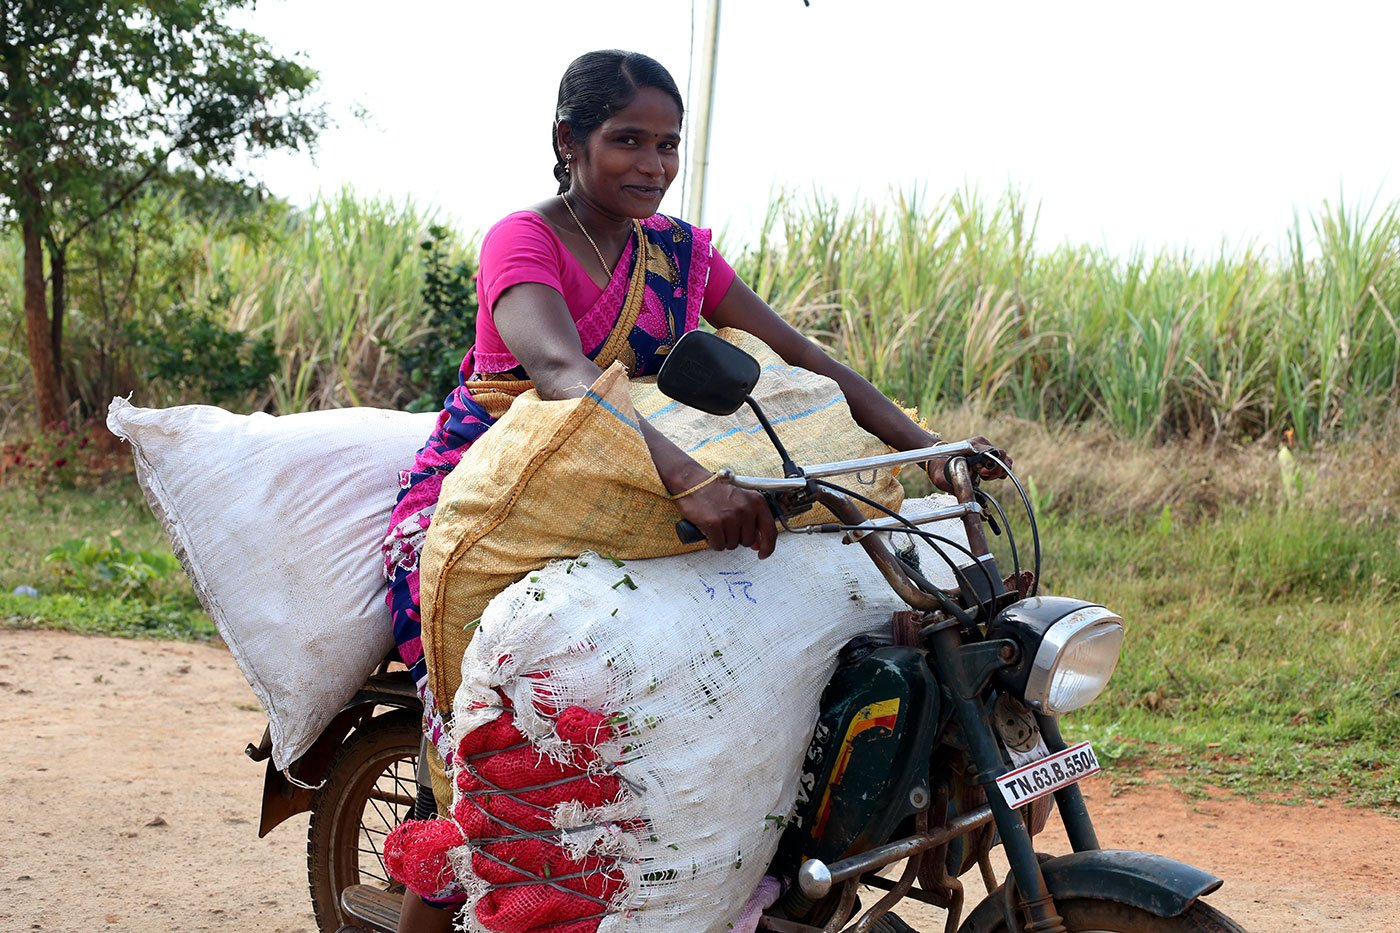 Up election 2017 behind sp congress alliance lies the open pursuit of a polarisating agenda firstpost - Chandra Subramanian Is A Single Mom Cultivator And Retailer In Sivagangai District Tamil Nadu